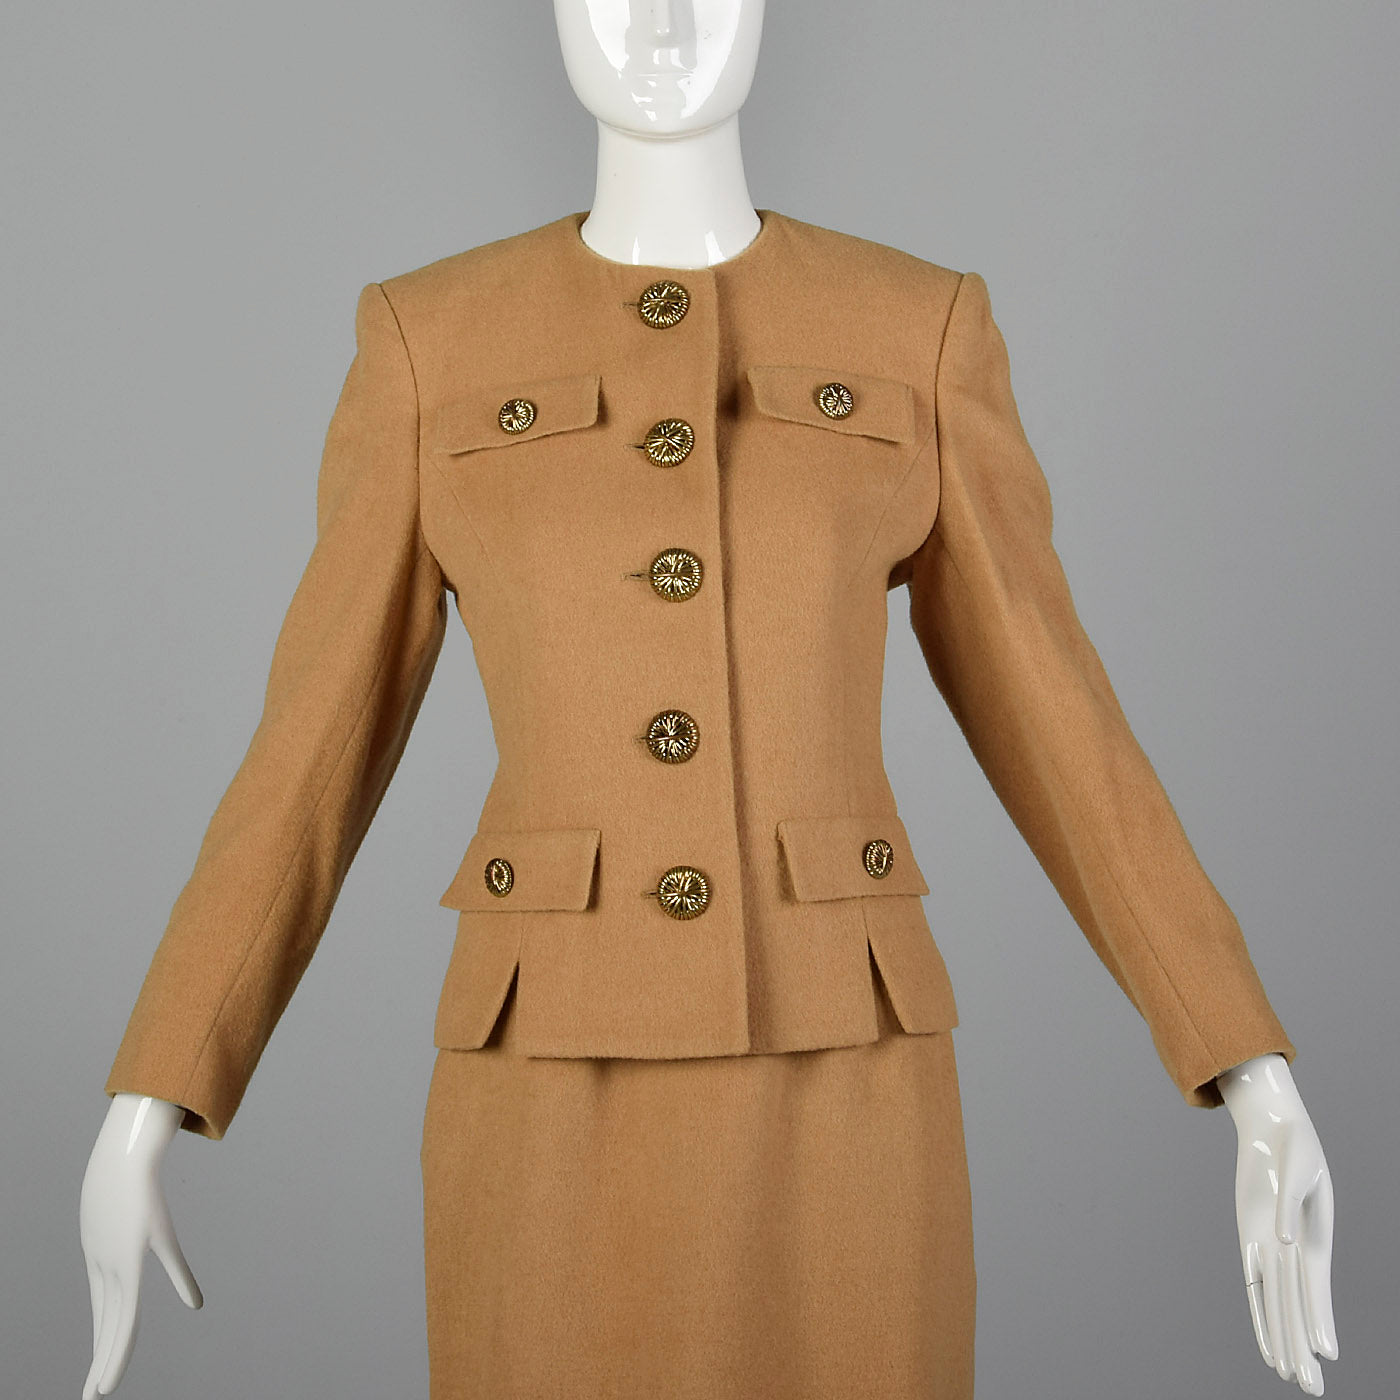 1970s Camel Color Skirt Suit in a Classic Silhouette